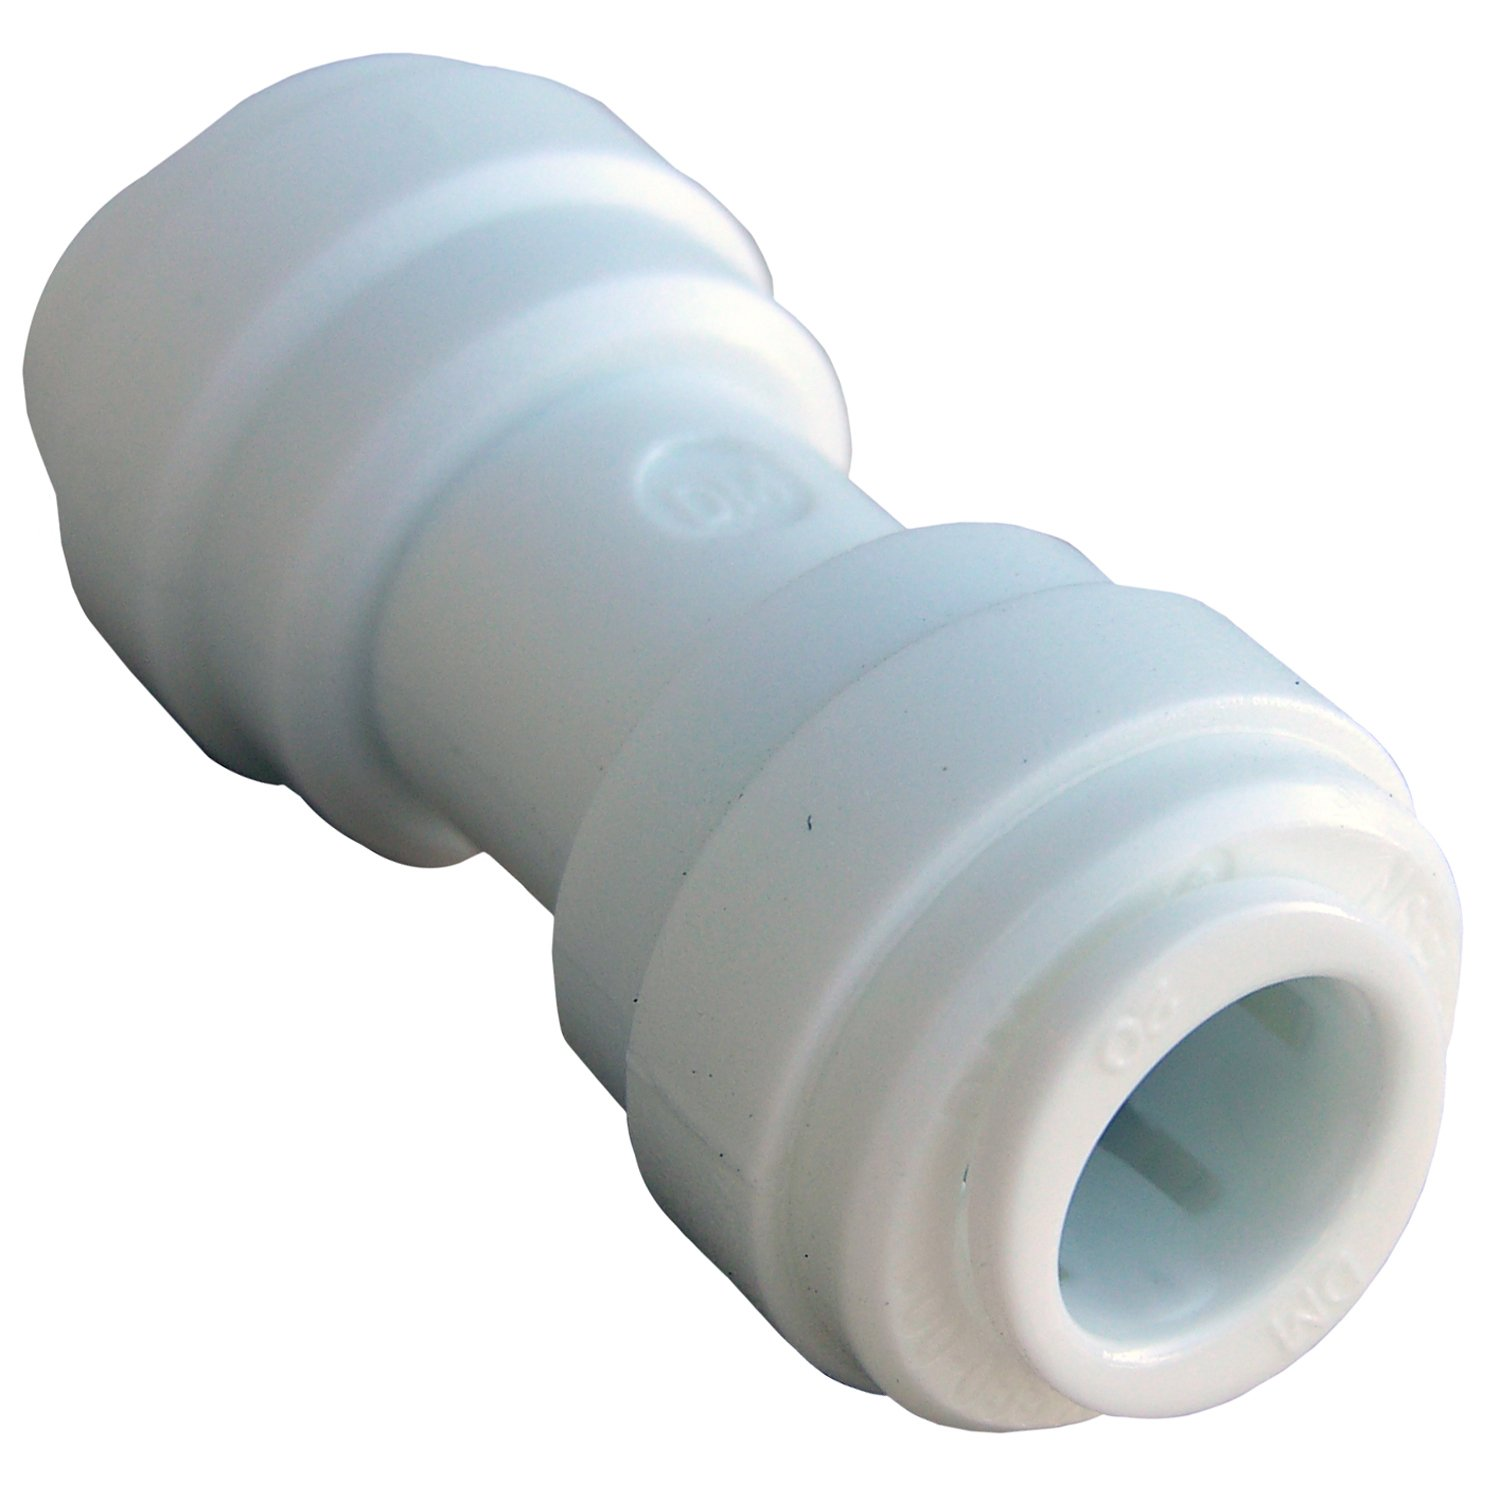 LASCO 19-6043 Tubing Coupling Push-in Fitting with 5/16 x 5/16-Inch OD, Plastic by LASCO